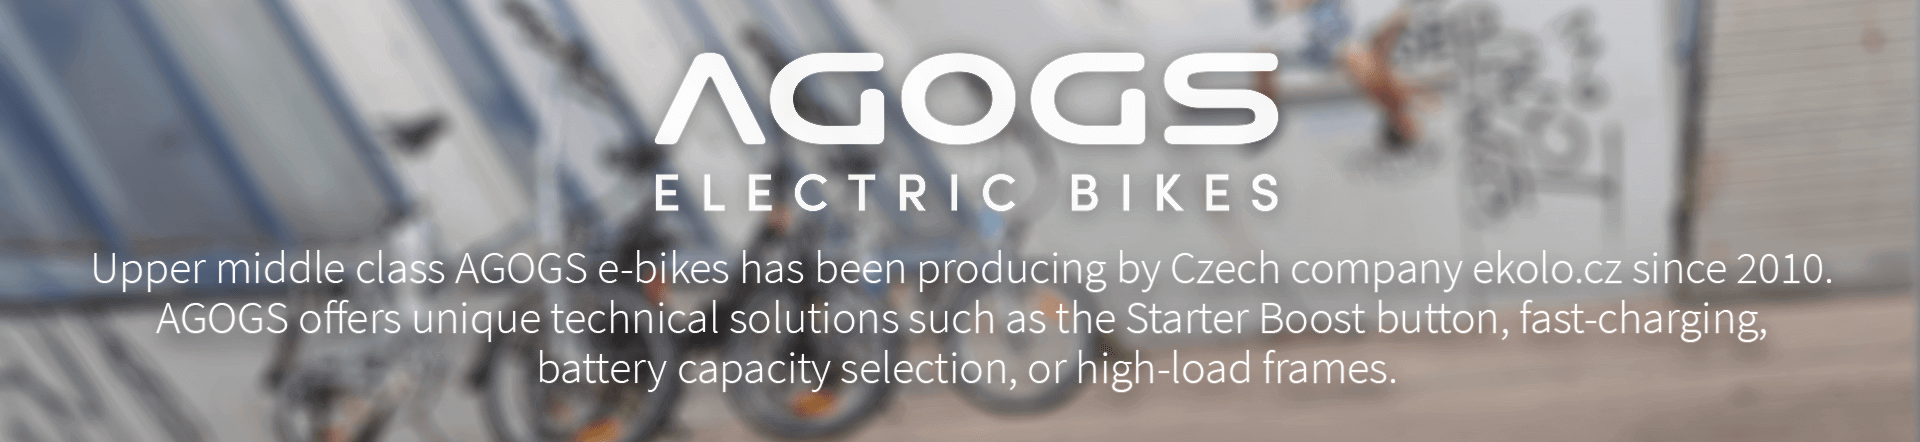 Upper middle class AGOGS e-bikes has been producing by Czech company ekolo.cz since 2010.  AGOGS offers unique technical solutions such as the Starter Boost button, fast-charging,  battery capacity selection, or high-load frames.